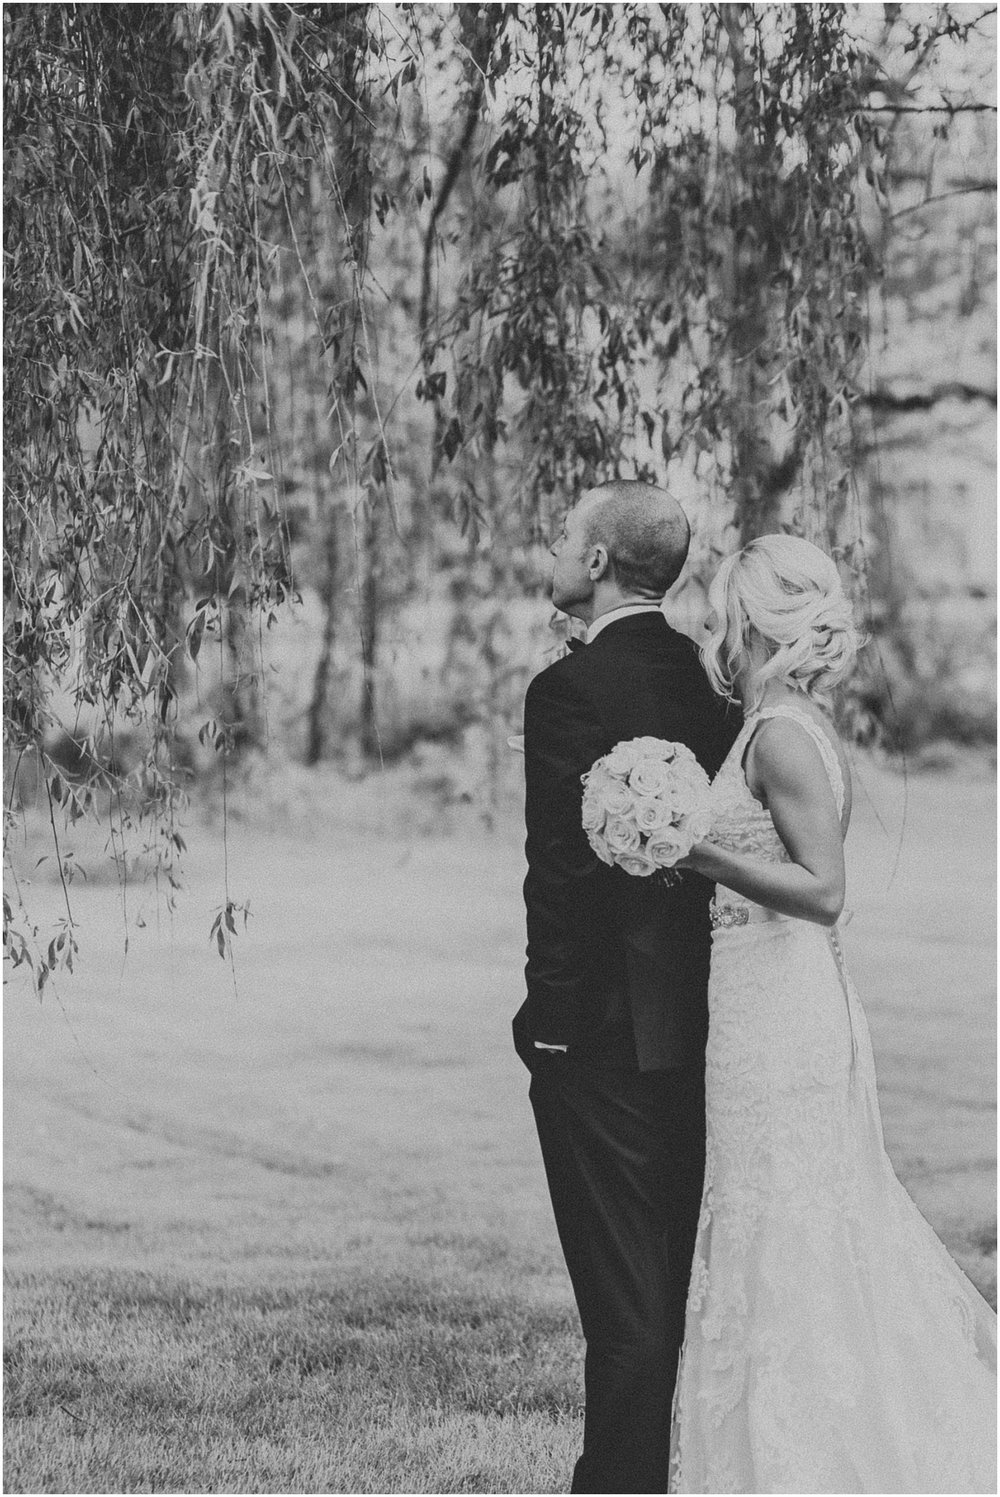 Bride and Groom anticipate first look on their wedding day under willow tree by gorgeous pond at The Historic Acres of Hershey in Hershey Pennsylvania